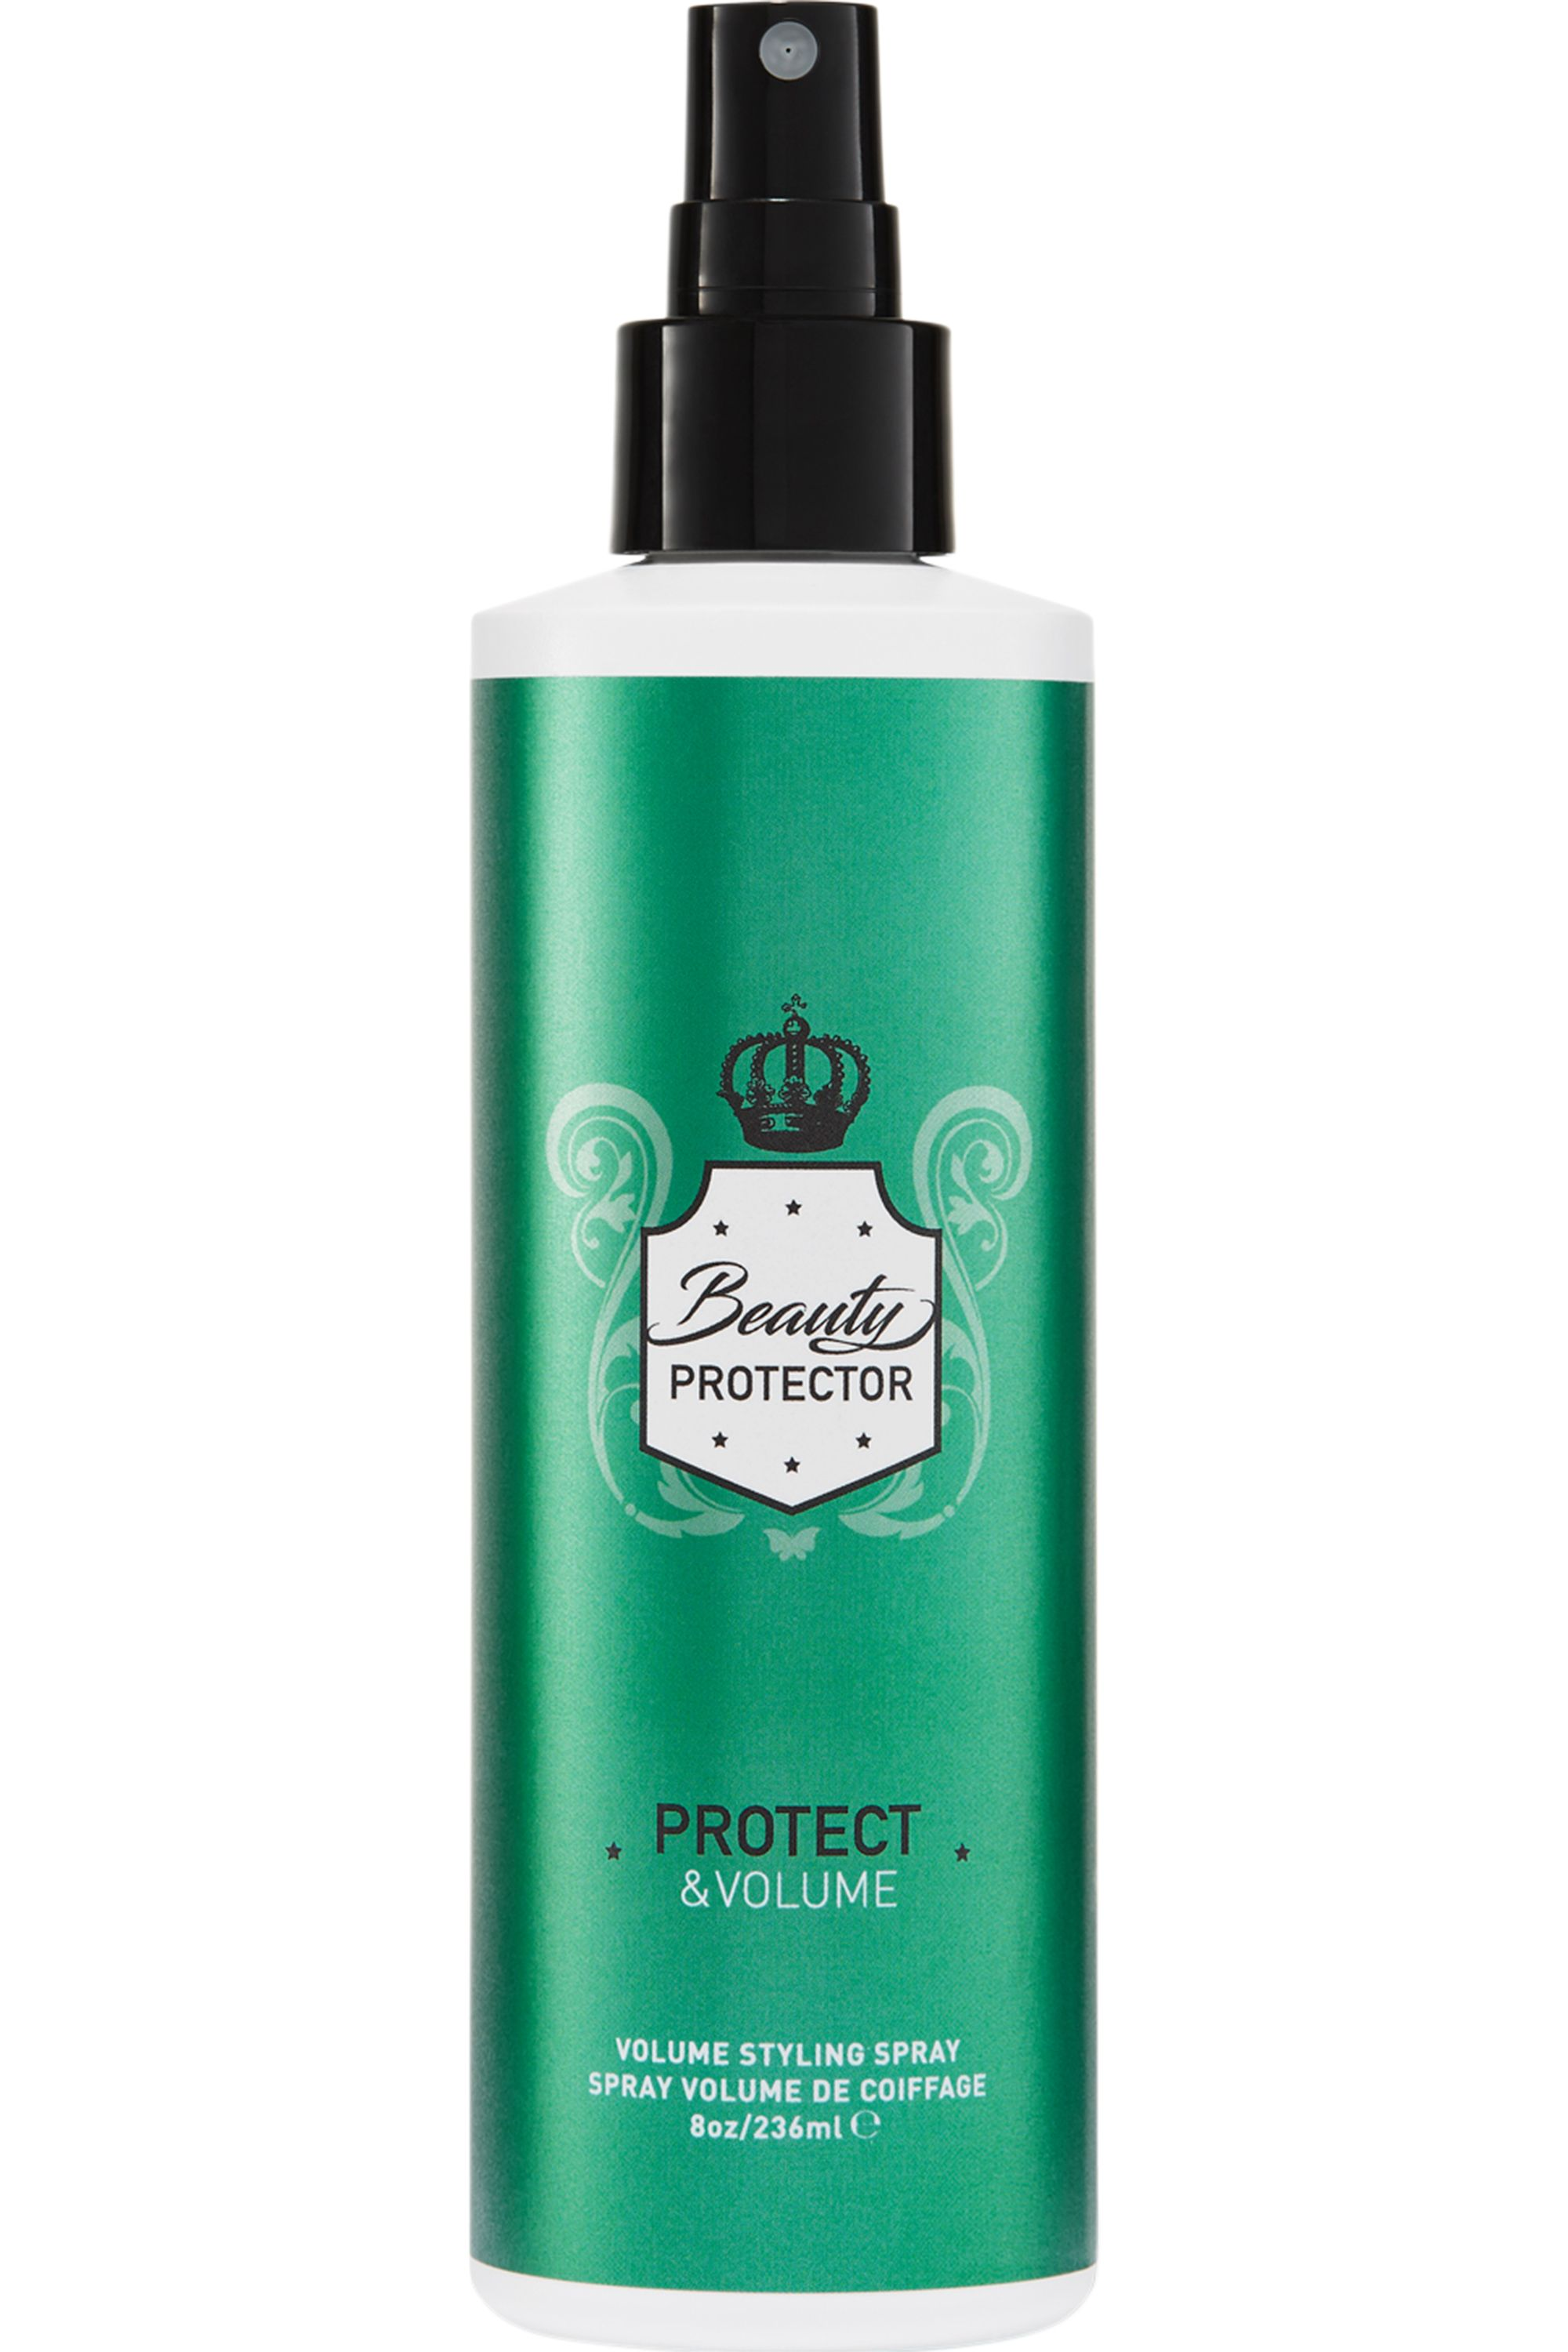 Blissim : Beauty Protector - Spray coiffant et volumisant Protect & Volume - Spray coiffant et volumisant Protect & Volume